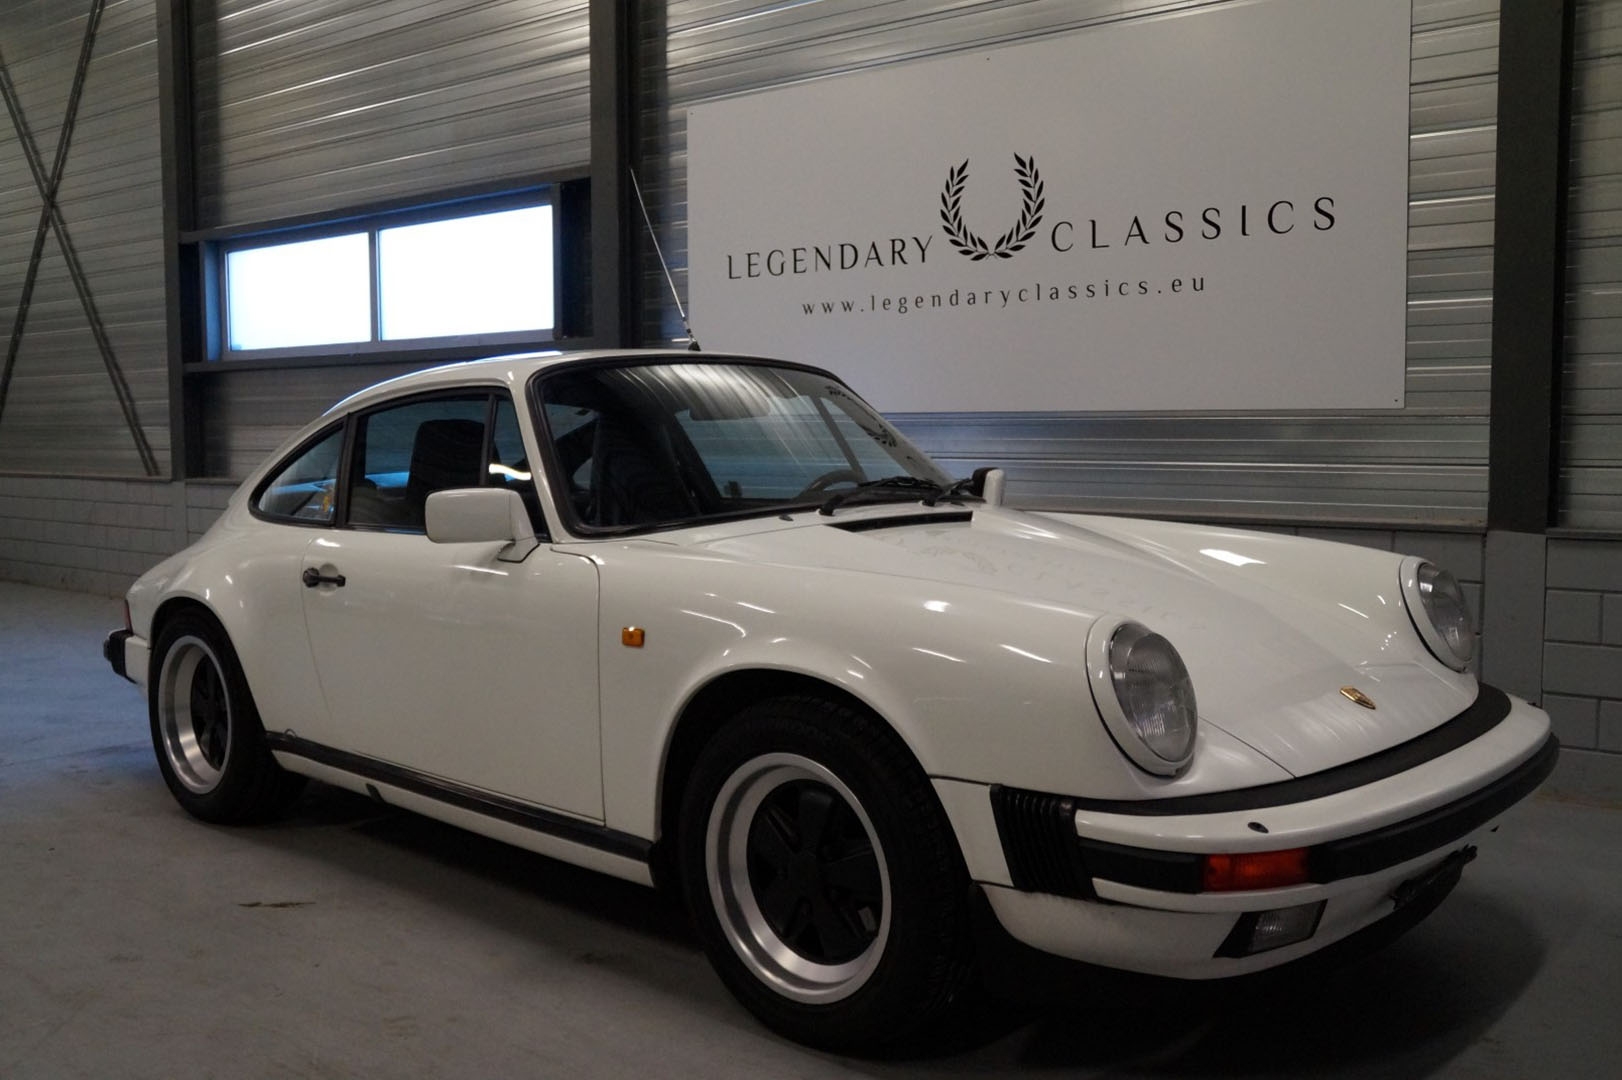 Buy this Porsche 911 Carrera 3.2   at Legendary Classics (1)